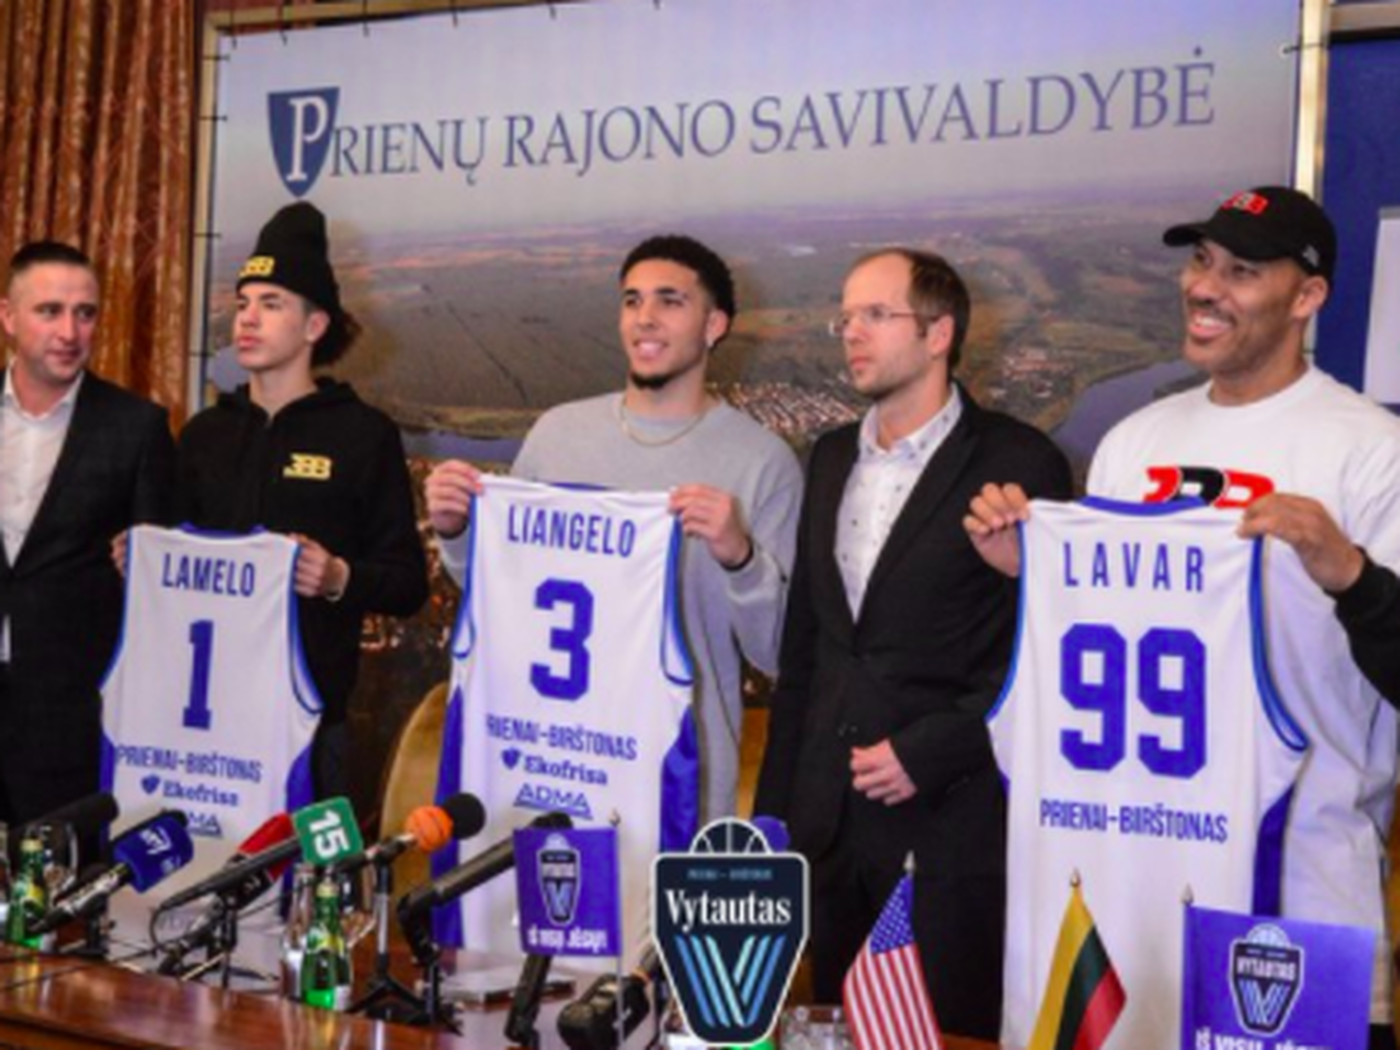 c755d0630c4c LaMelo and Liangelo Ball s press conference photo is hilarious -  SBNation.com